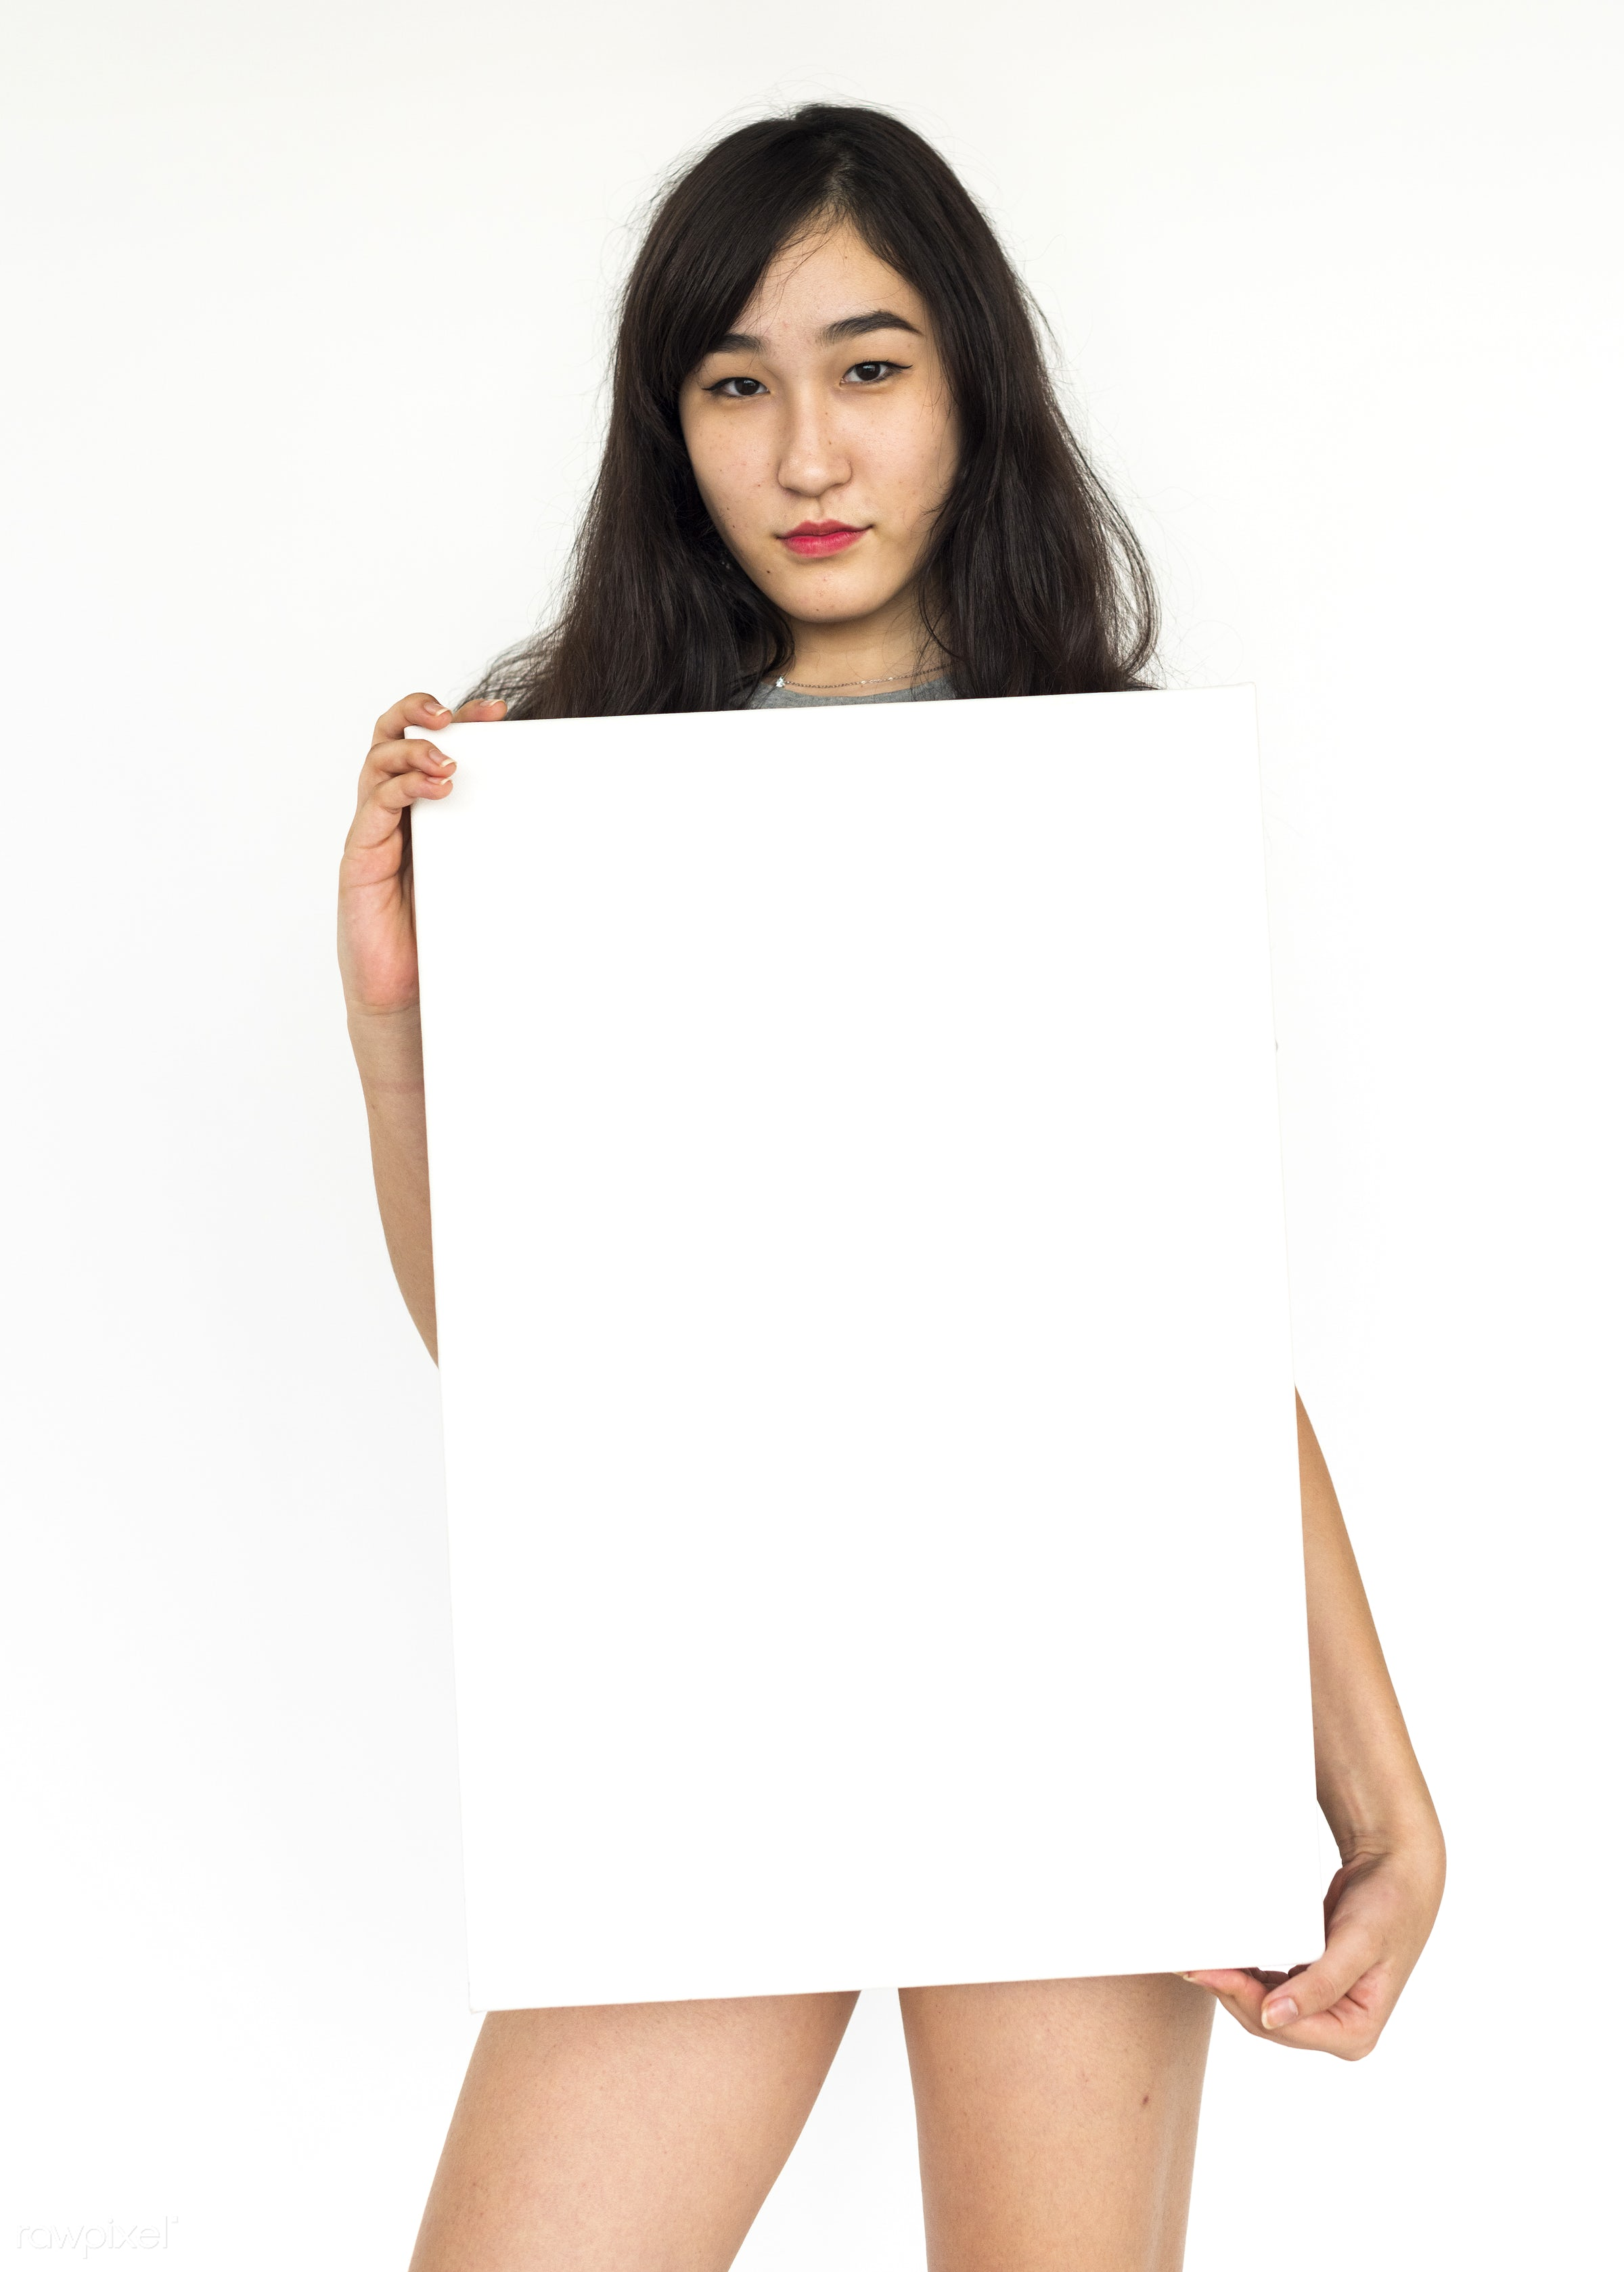 studio, expression, person, holding, people, asian, placard, woman, smile, cheerful, smiling, isolated, white, asian woman,...